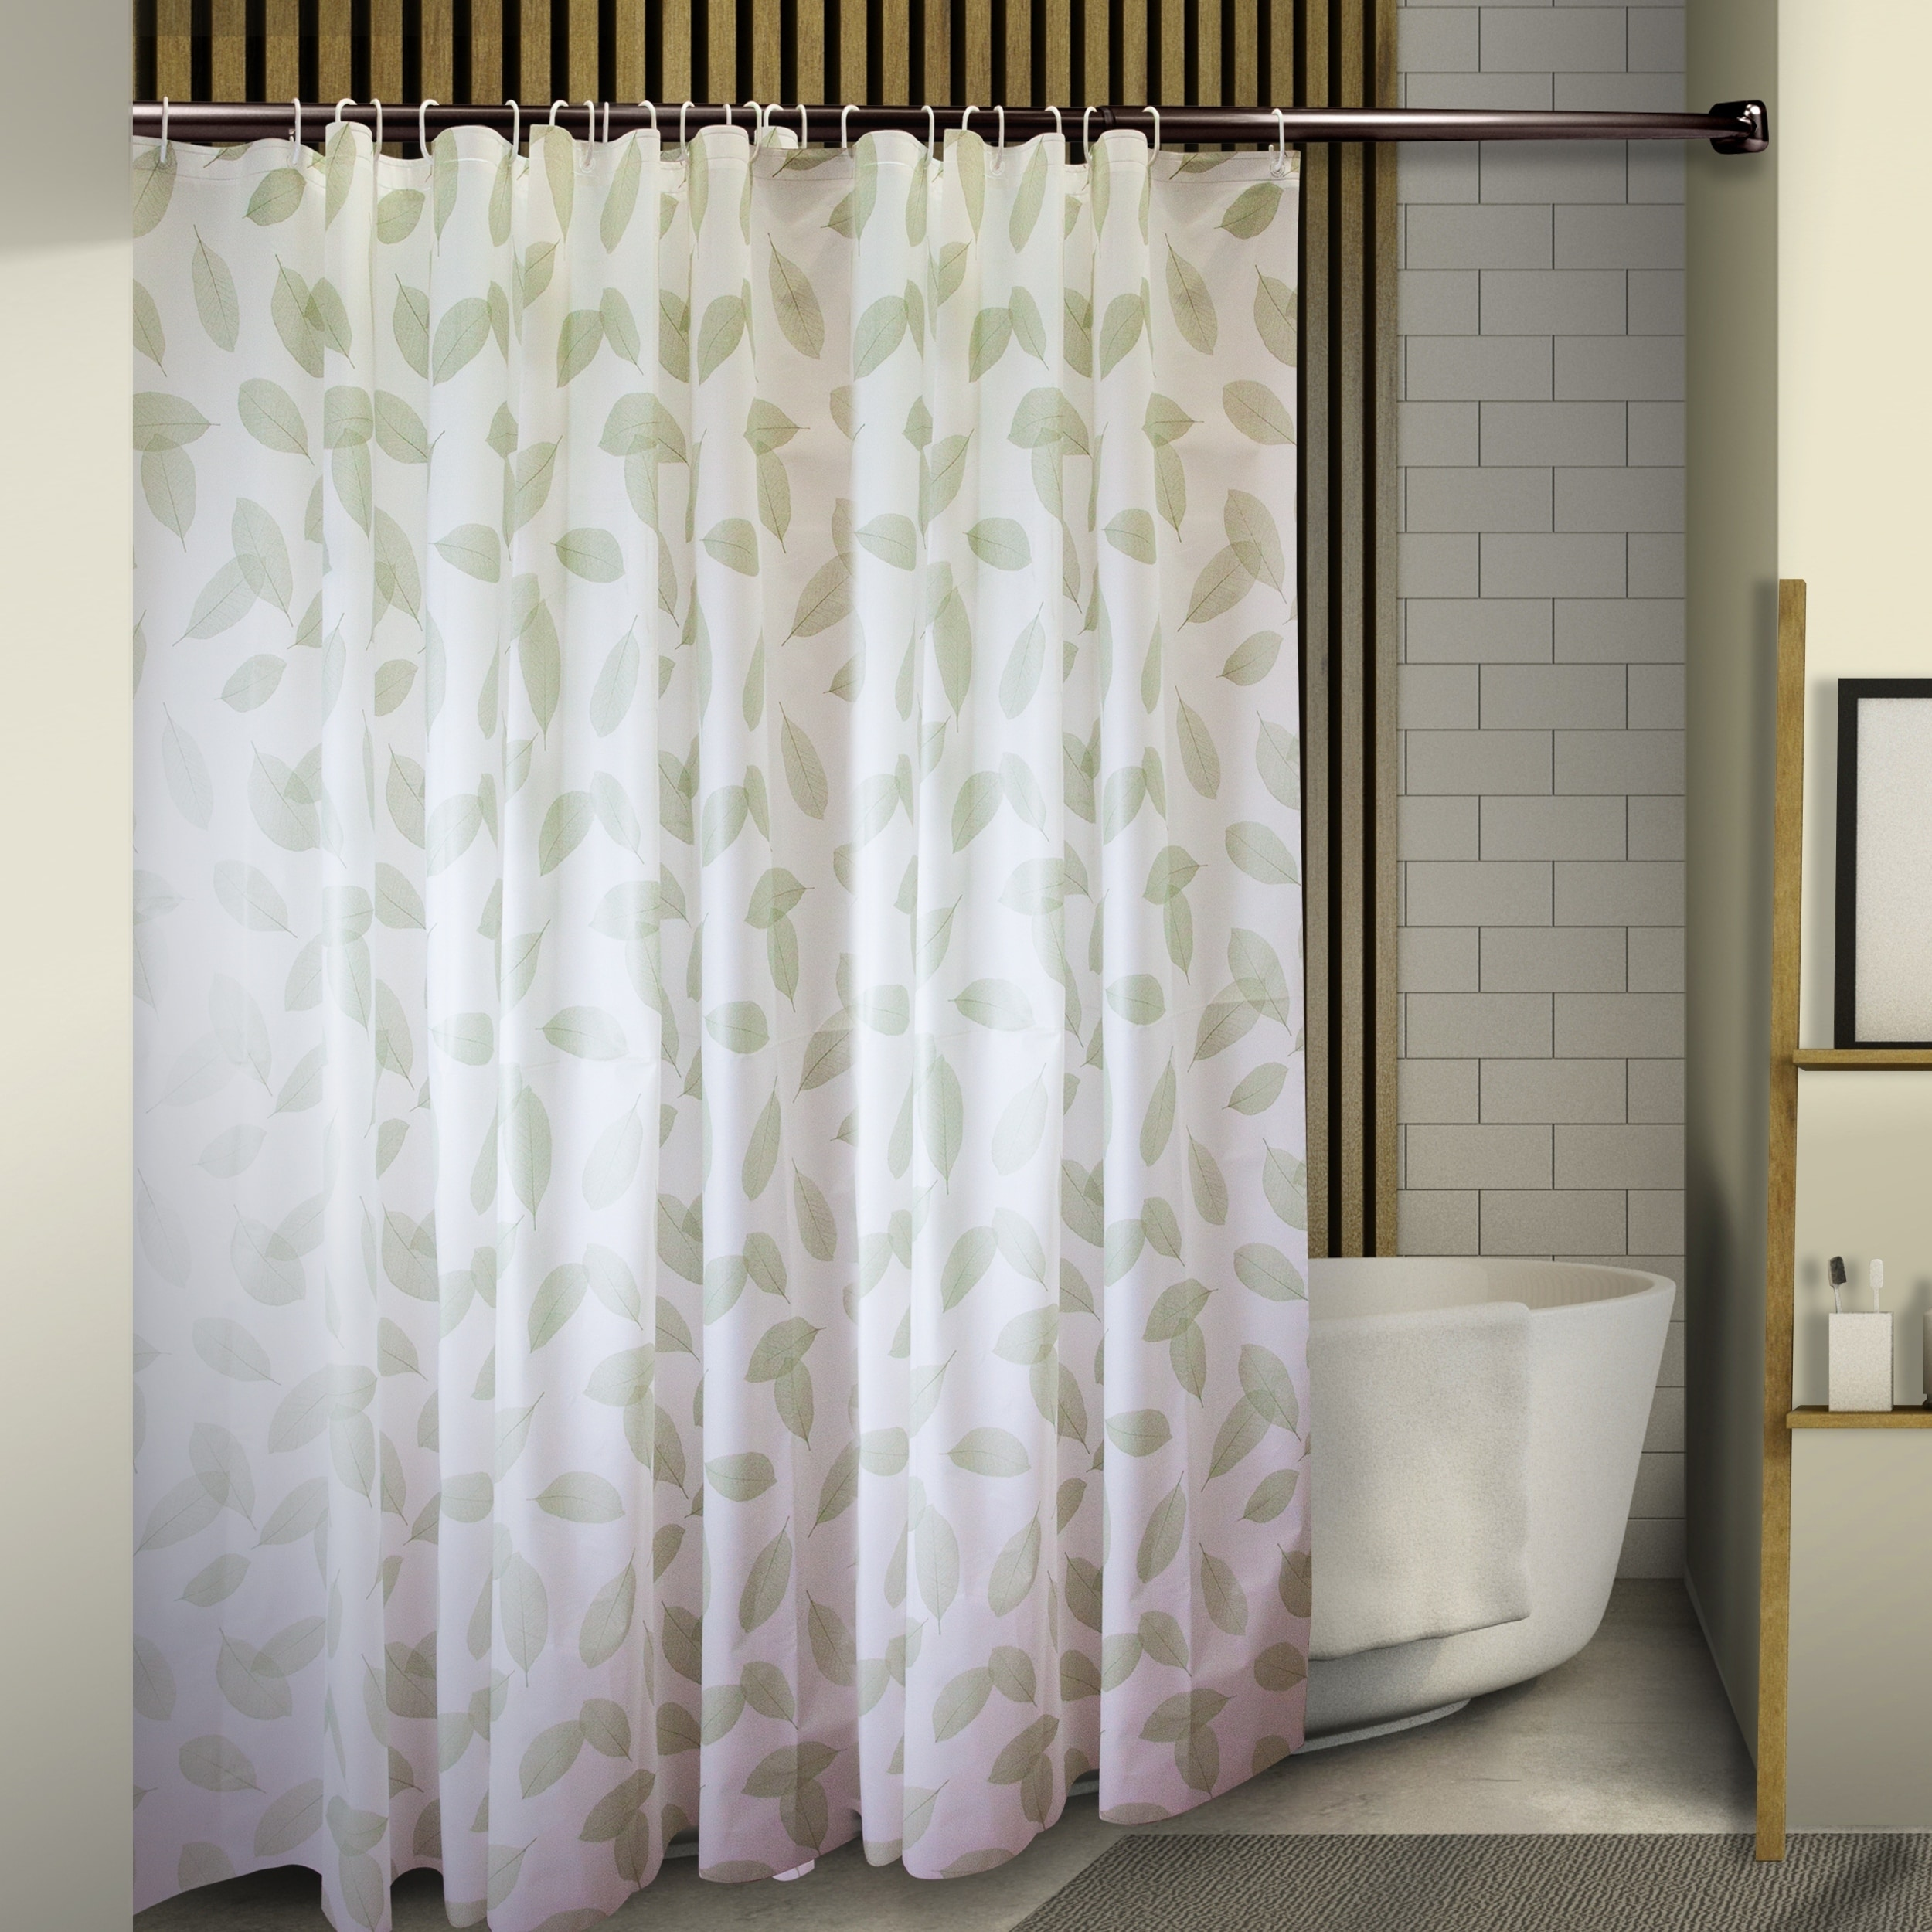 Instyledesign Leaves Shower Curtain 71 X 71 Green Leaves